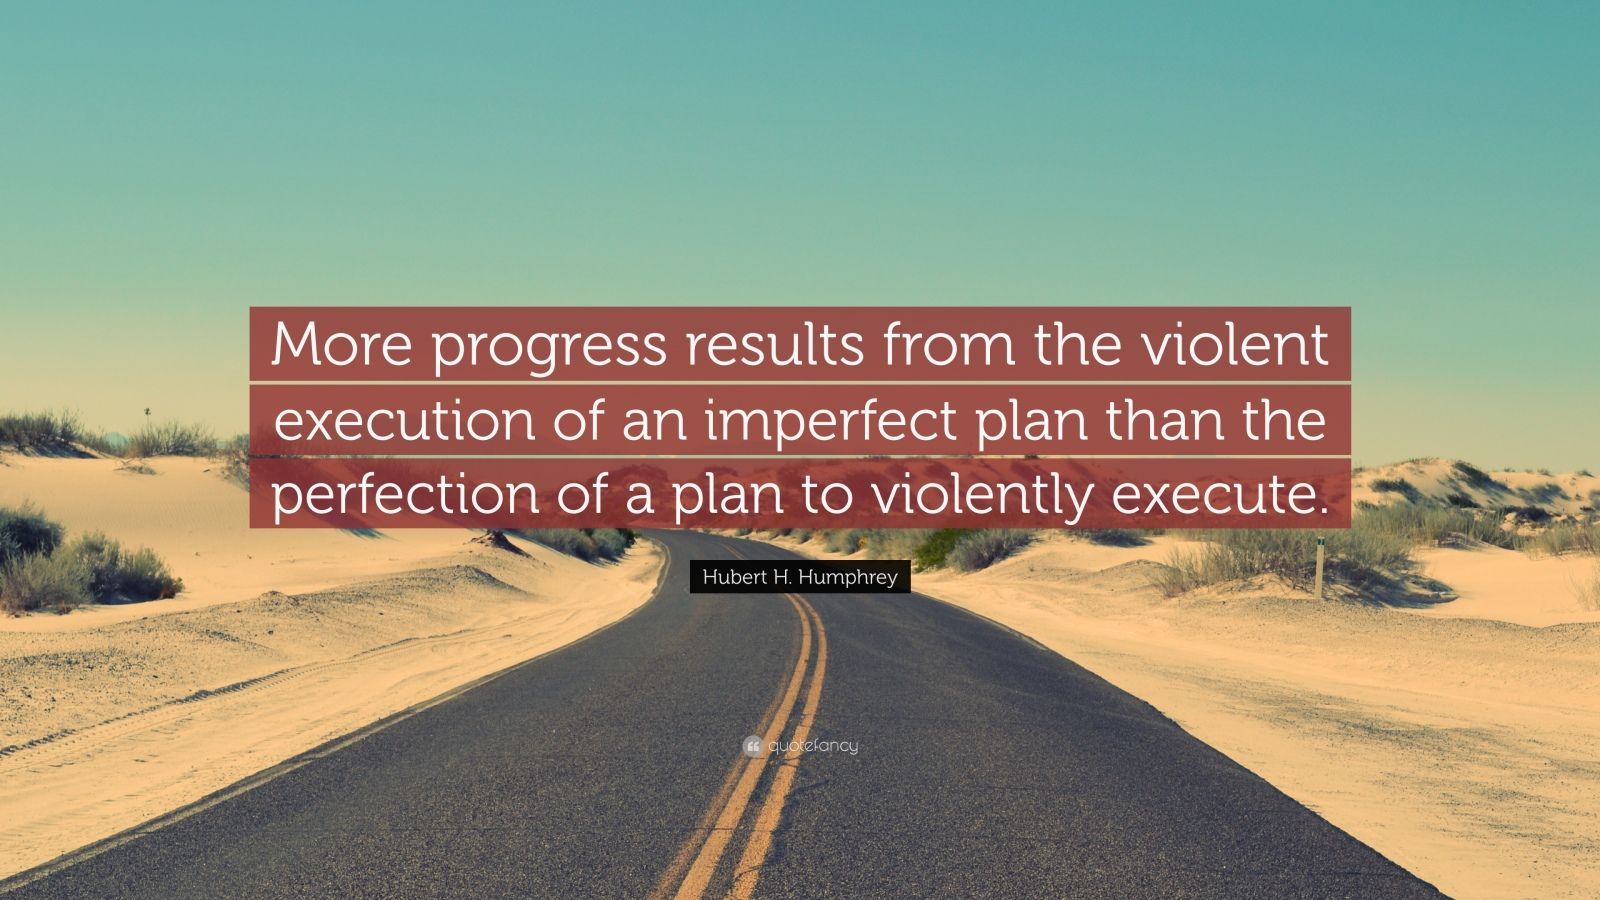 """Hubert H. Humphrey Quote: """"More progress results from the violent execution of an imperfect plan than the perfection of a plan to violently execute."""""""